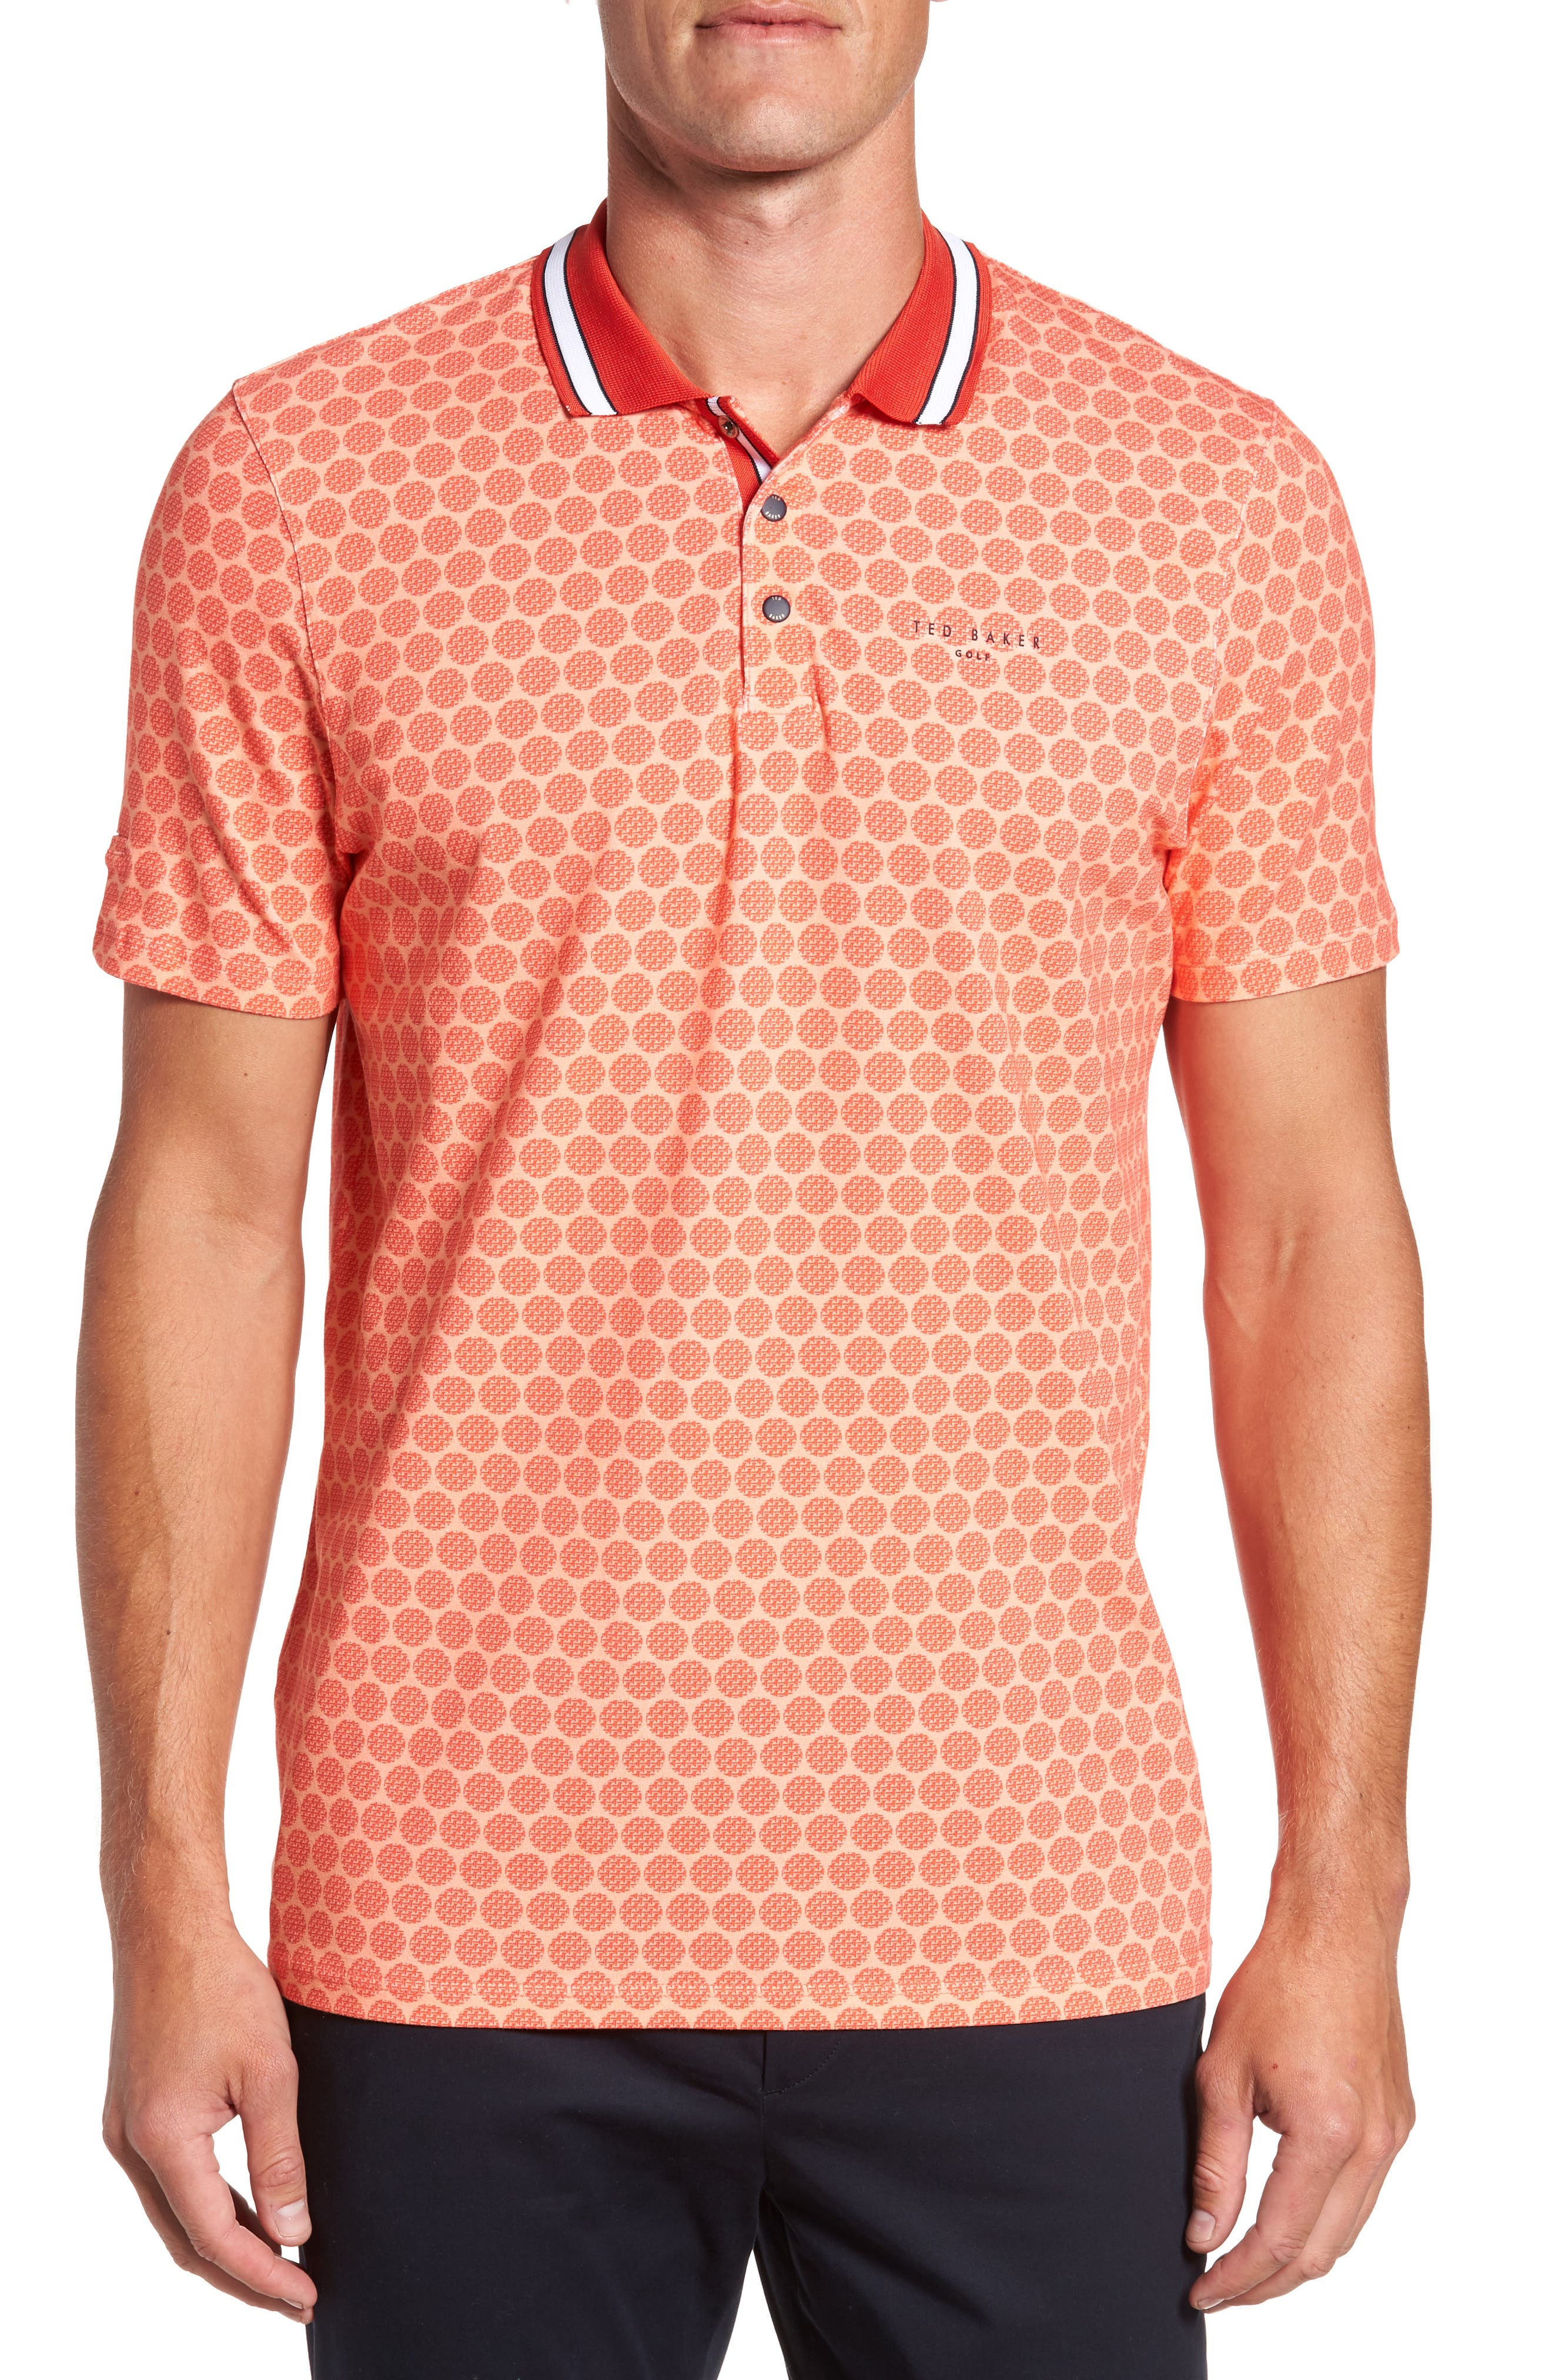 TED BAKER LONDON Golf Polo